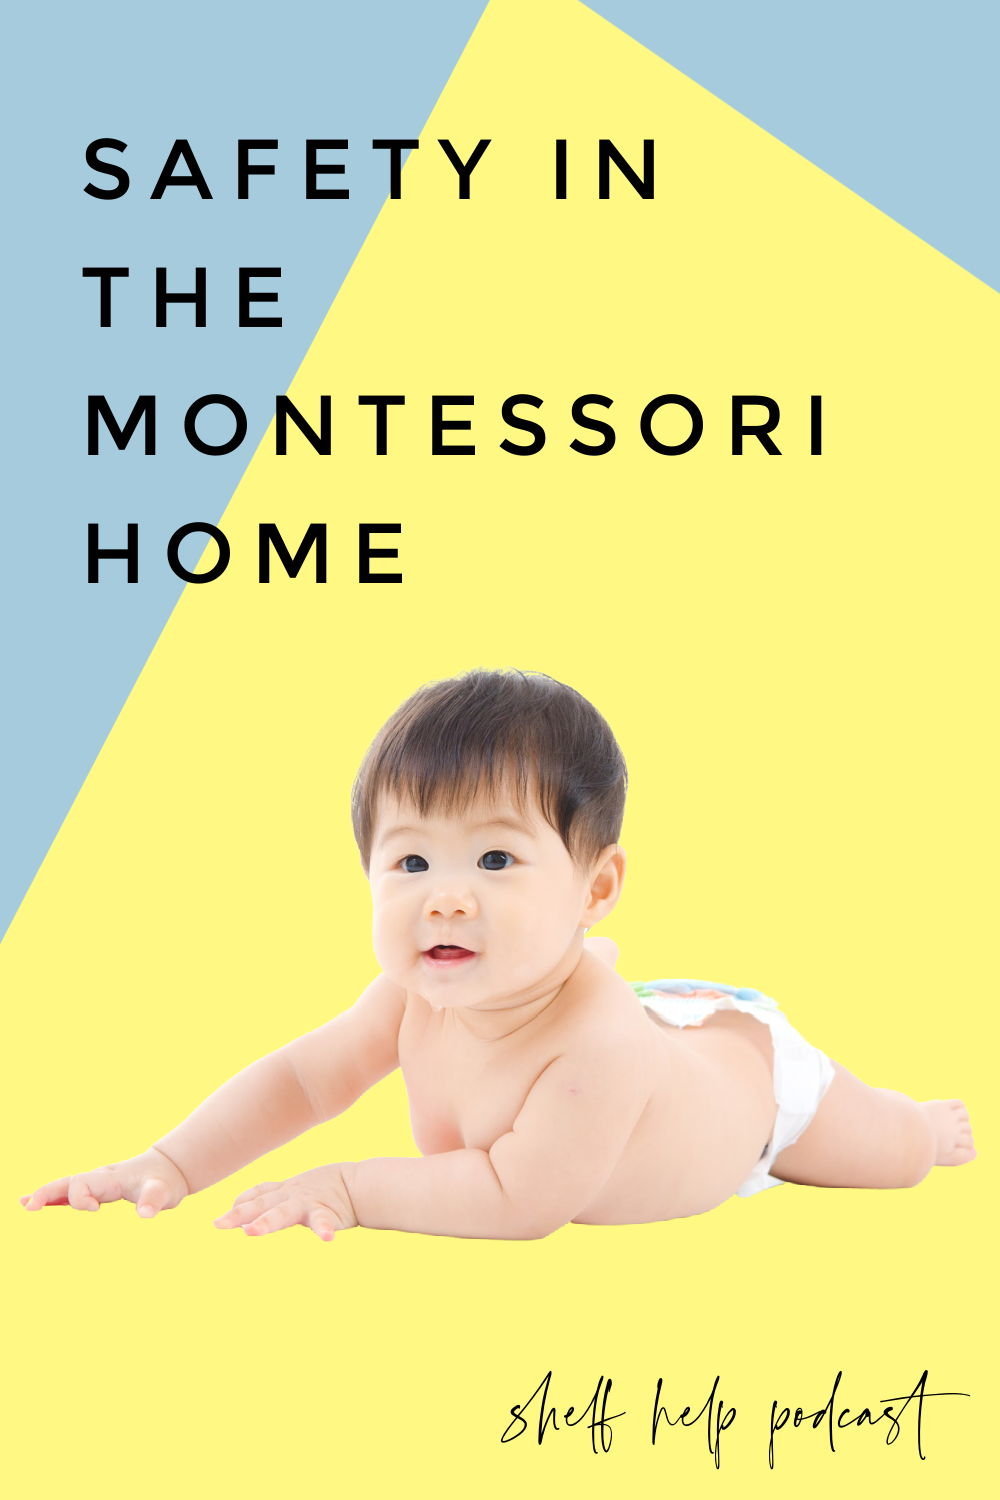 In this Montessori parenting podcast, we talk safety and Montessori babies. We explore balance safety and freedom of movement for young children.